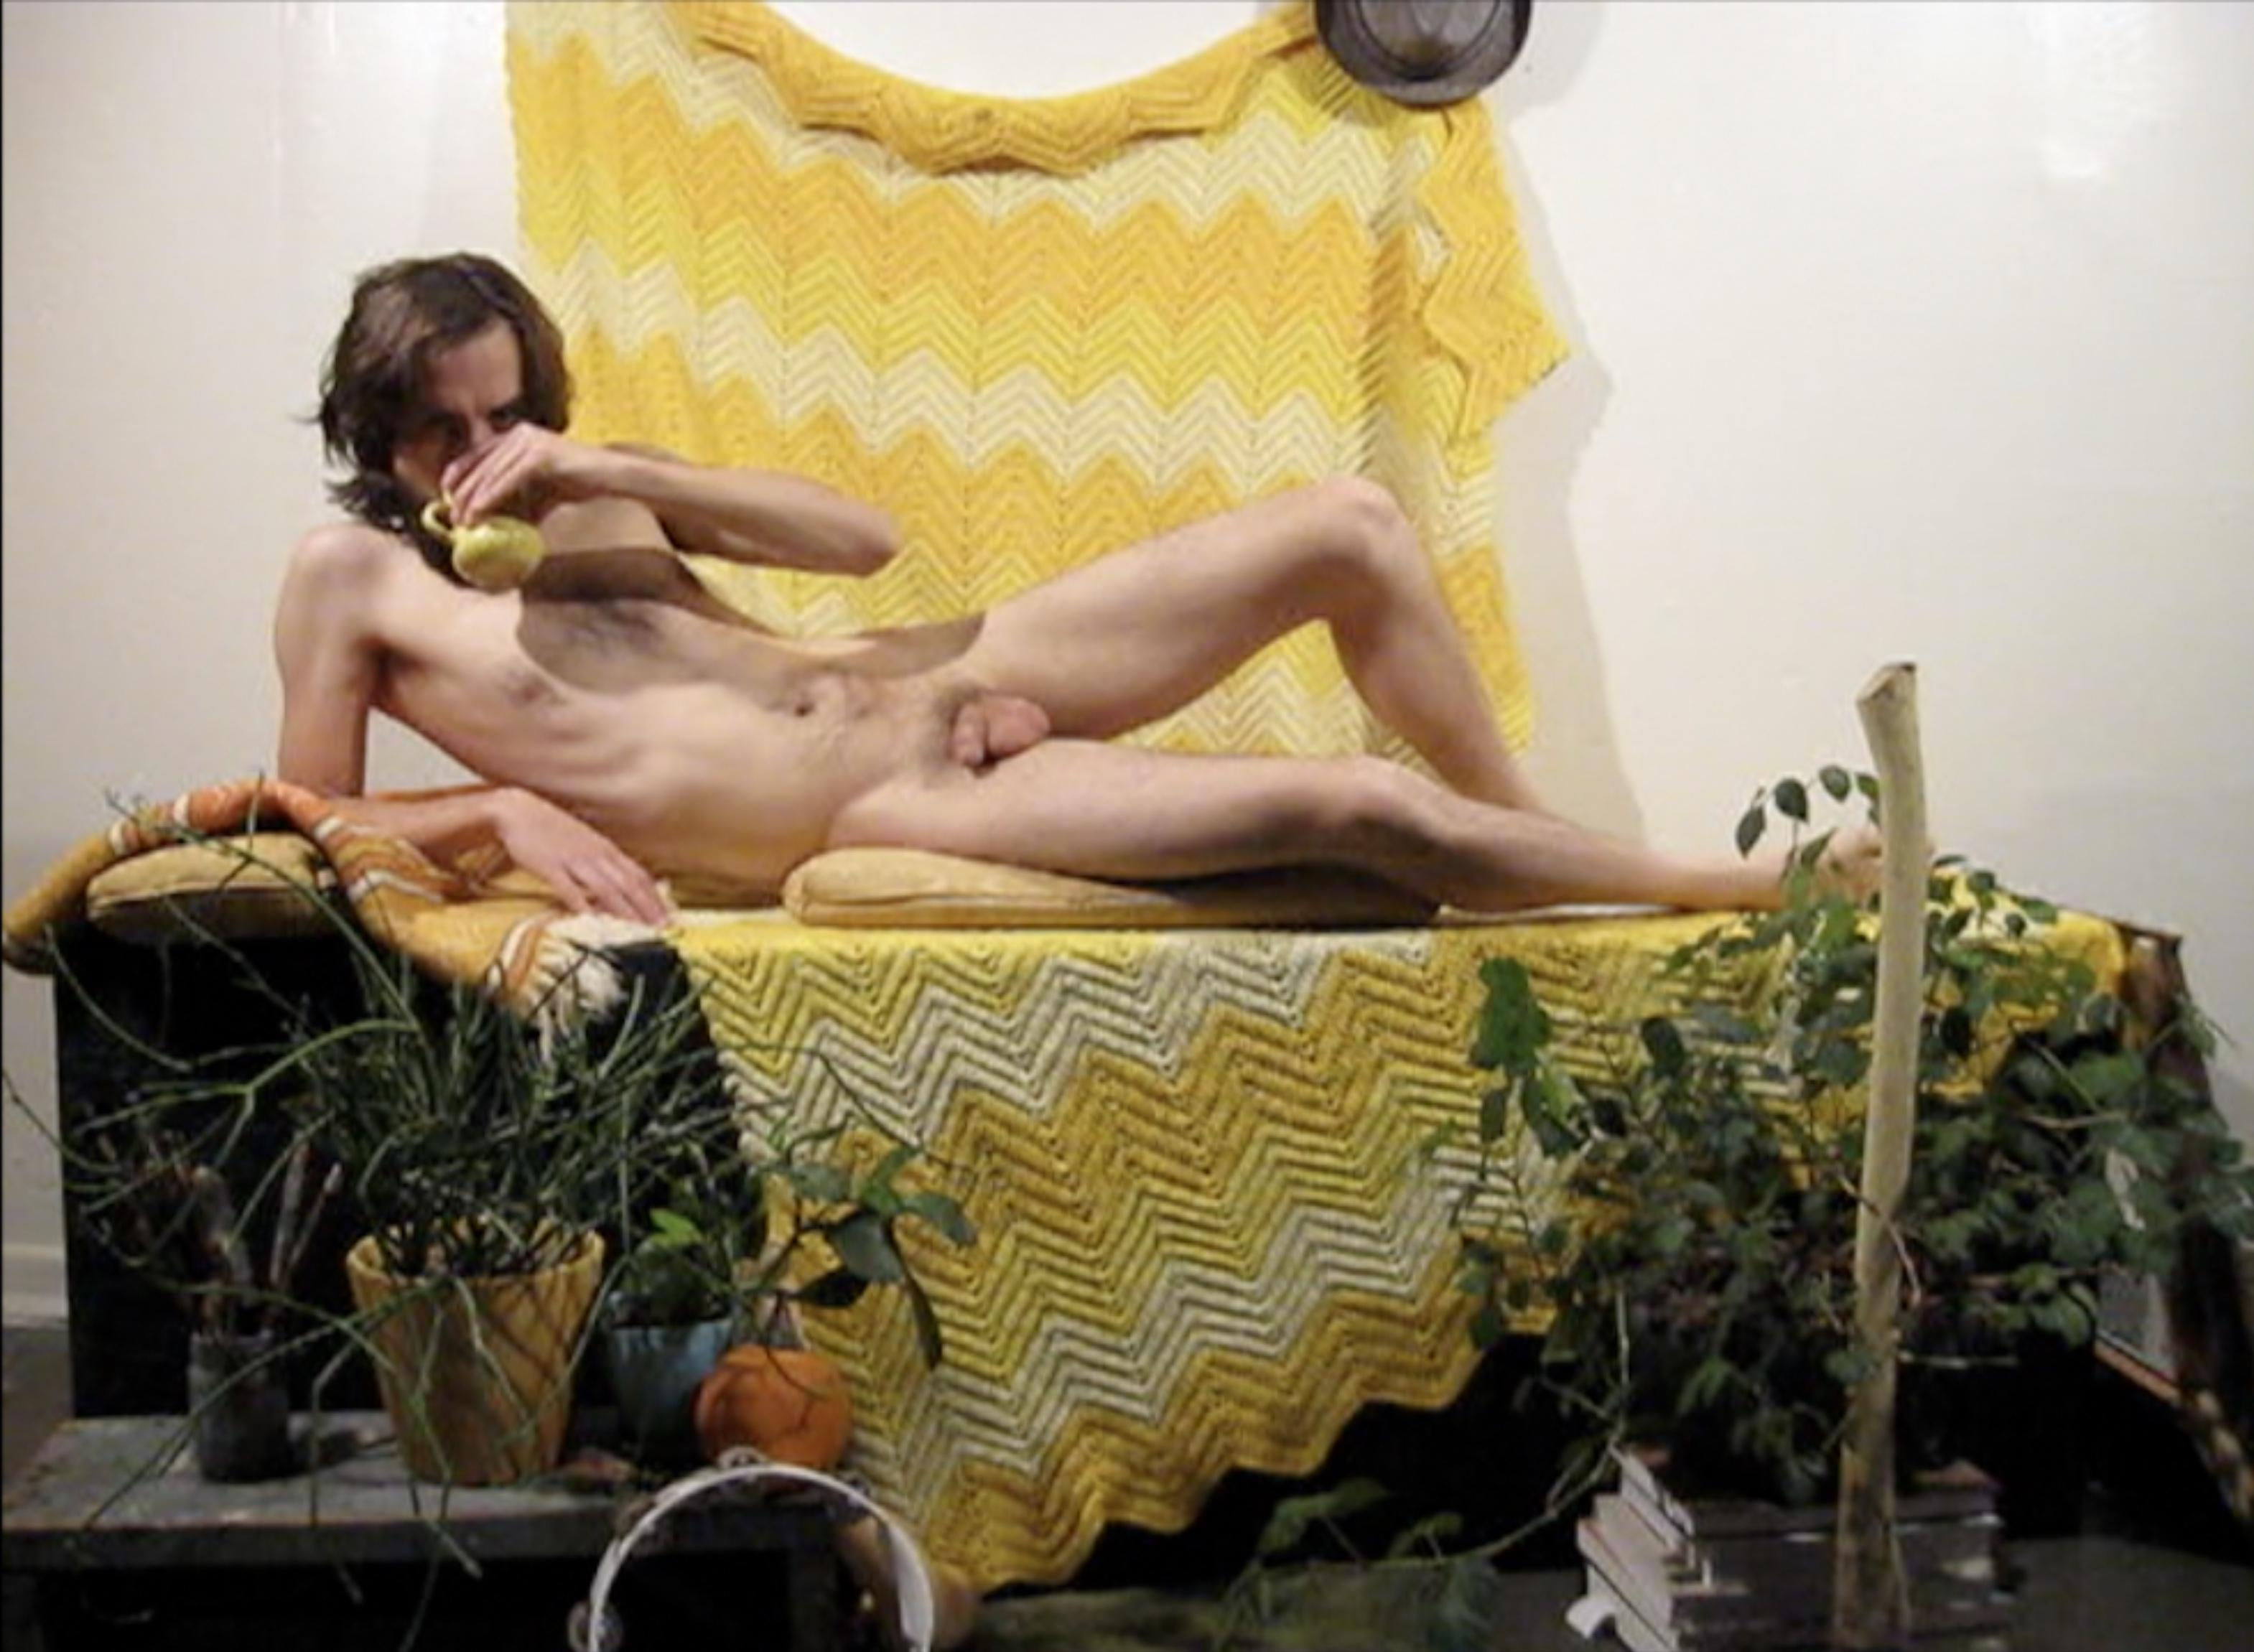 A nude masculine person lounges on a platform covered in yellow blankets and surrounded by potted plants. They drink from a yellow mug, as if posing for a figure drawing session.